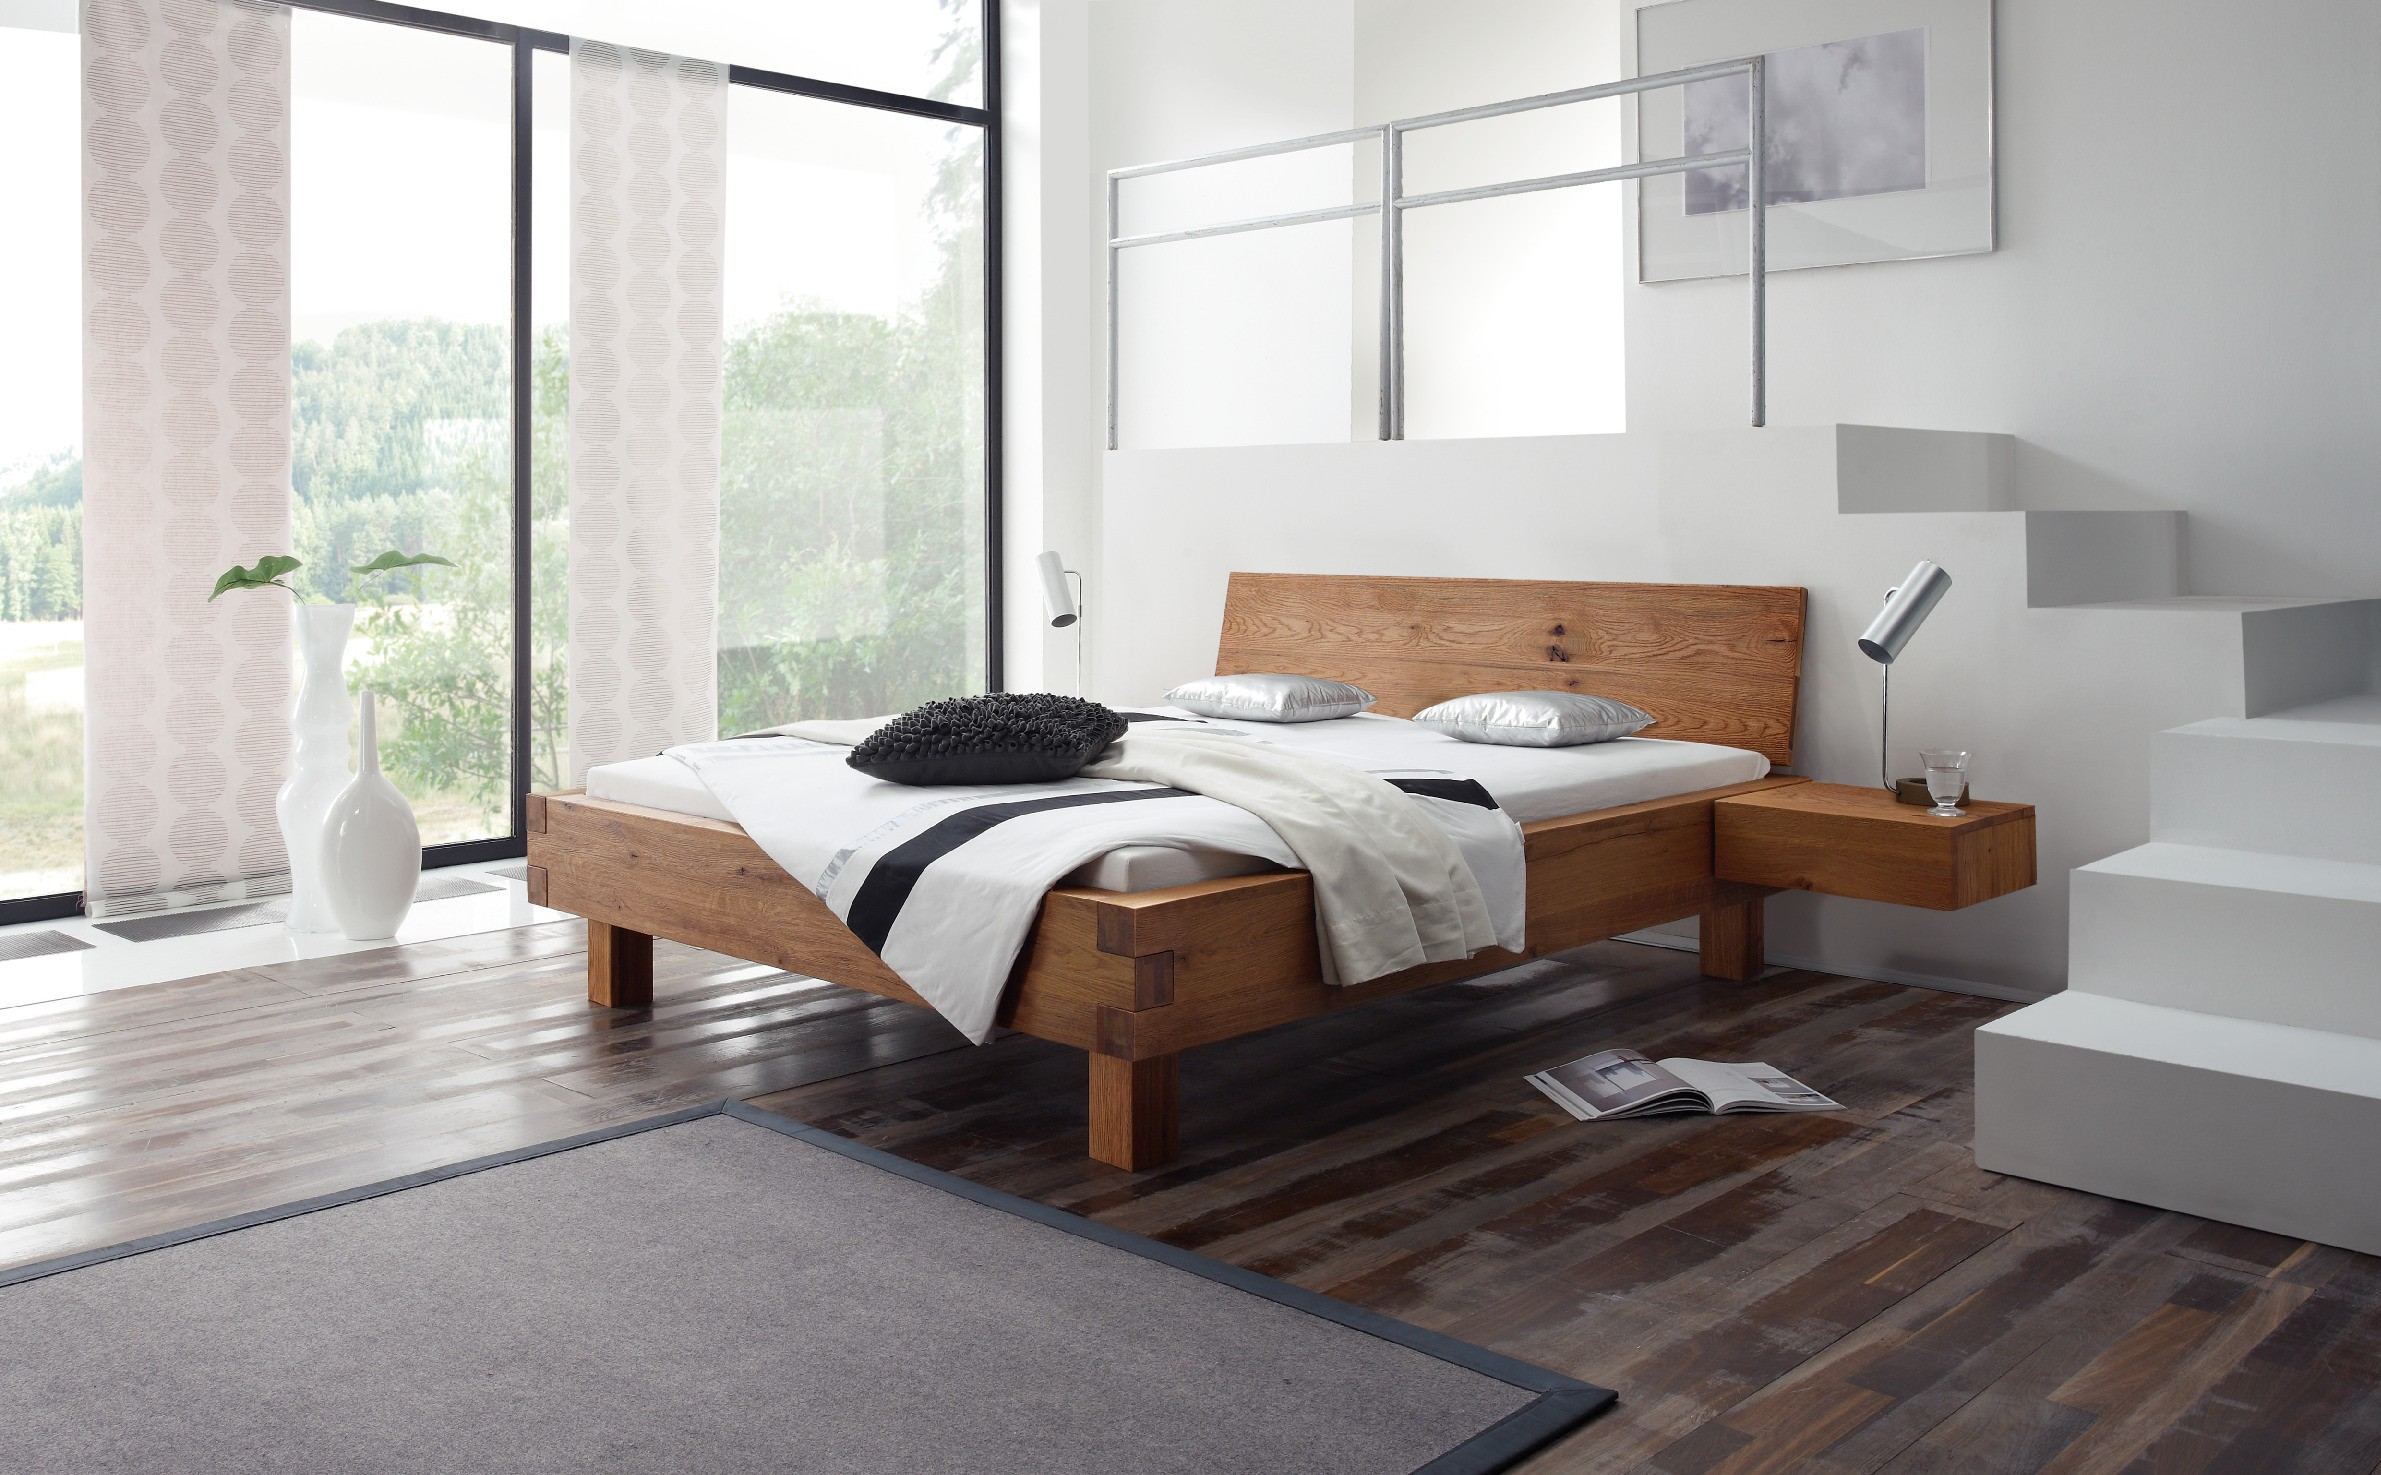 akzentmoebel unger shop bett hasena oak line wild pilatus 23. Black Bedroom Furniture Sets. Home Design Ideas